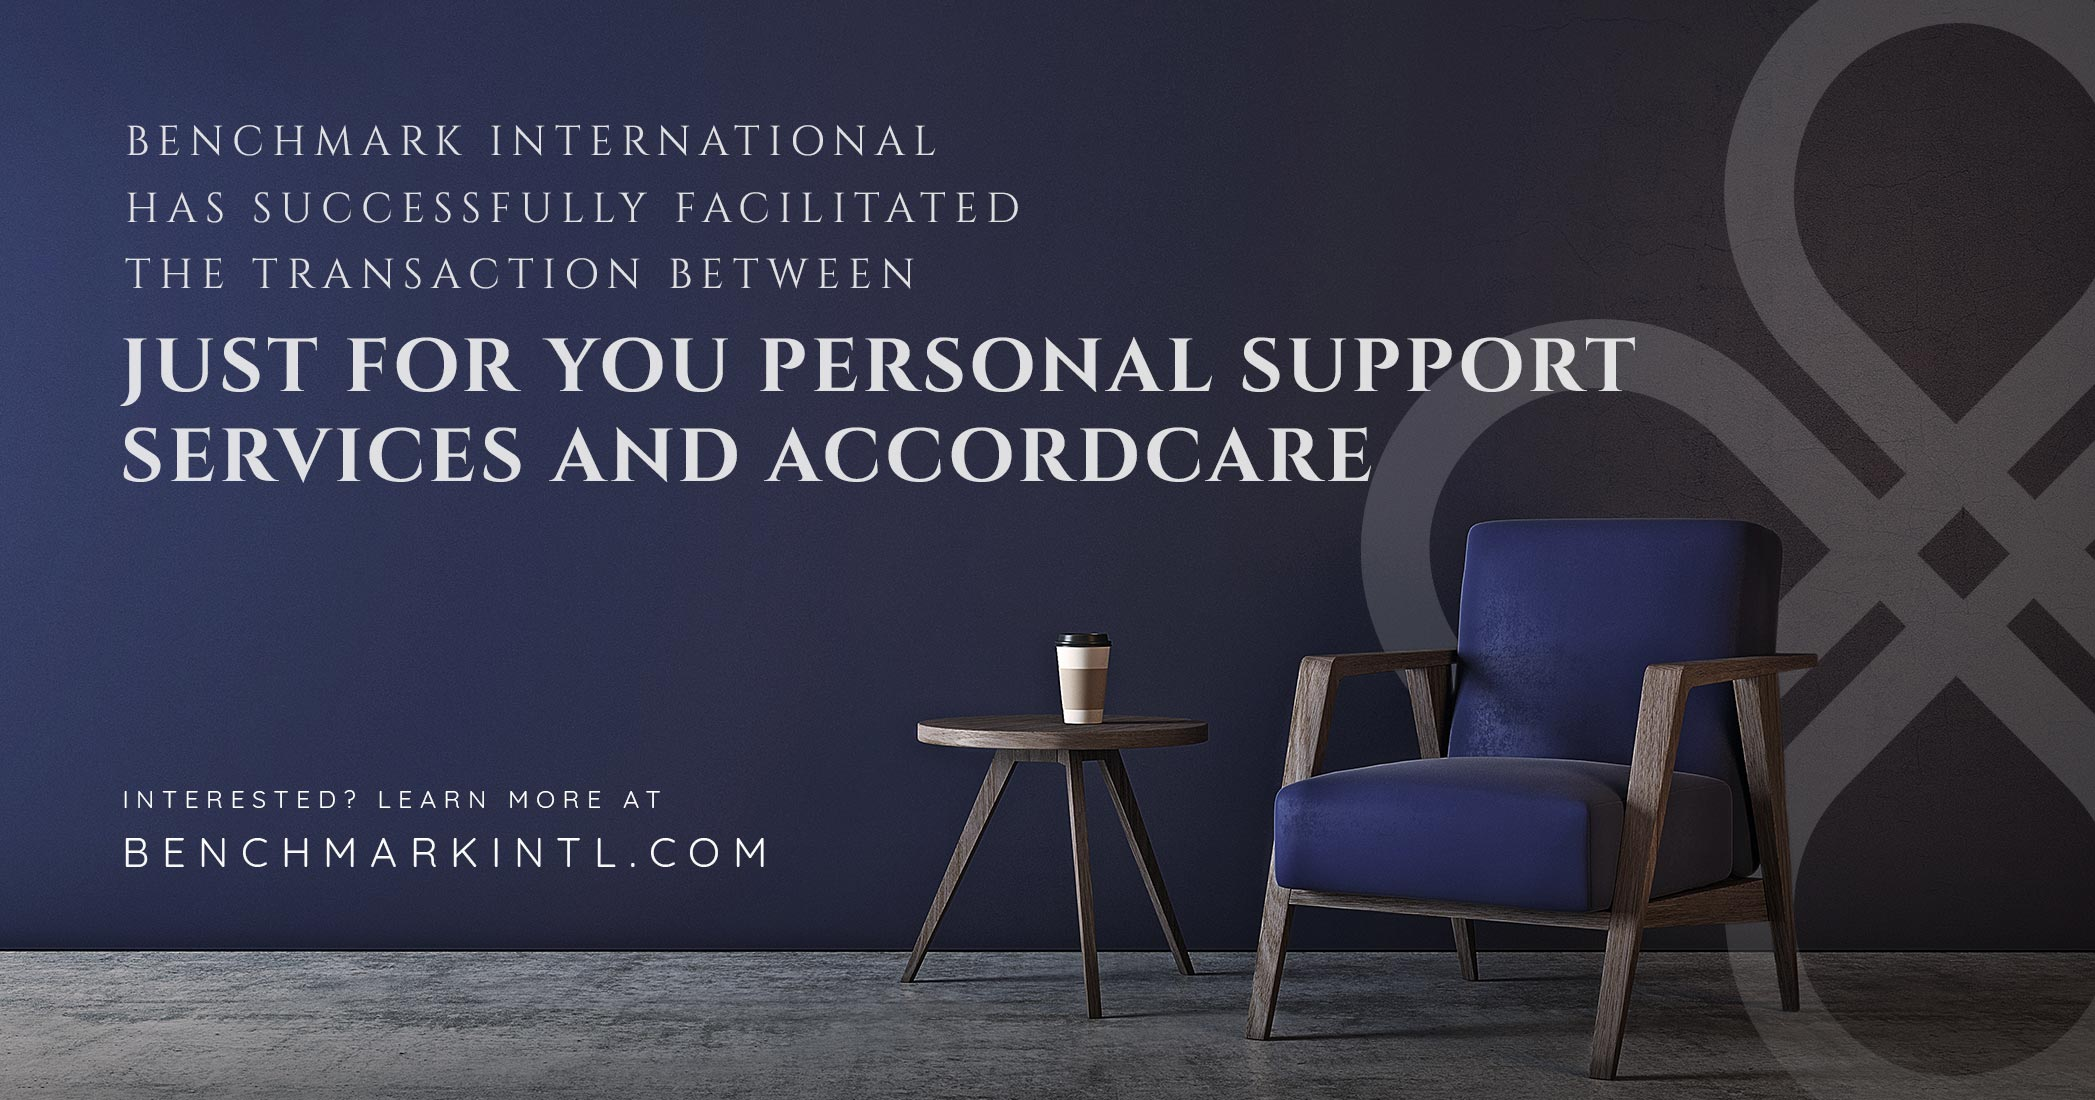 Benchmark International Successfully Facilitated the Transaction Between Just For You Personal Support Services and AccordCare